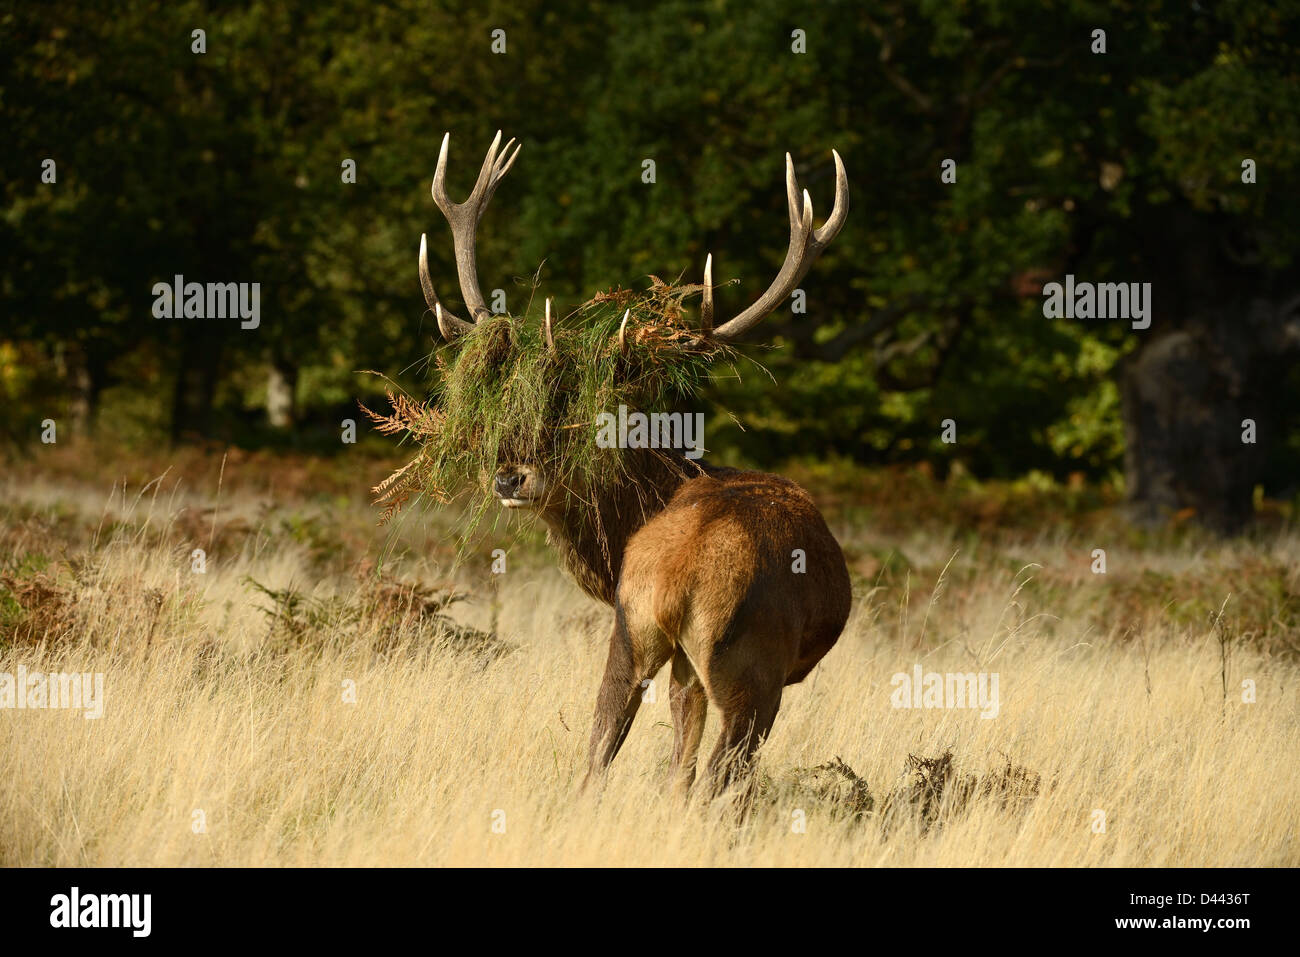 Red Deer (Cervus elaphus) stag with head covered in grass and bracken, Richmond Park, England, October - Stock Image